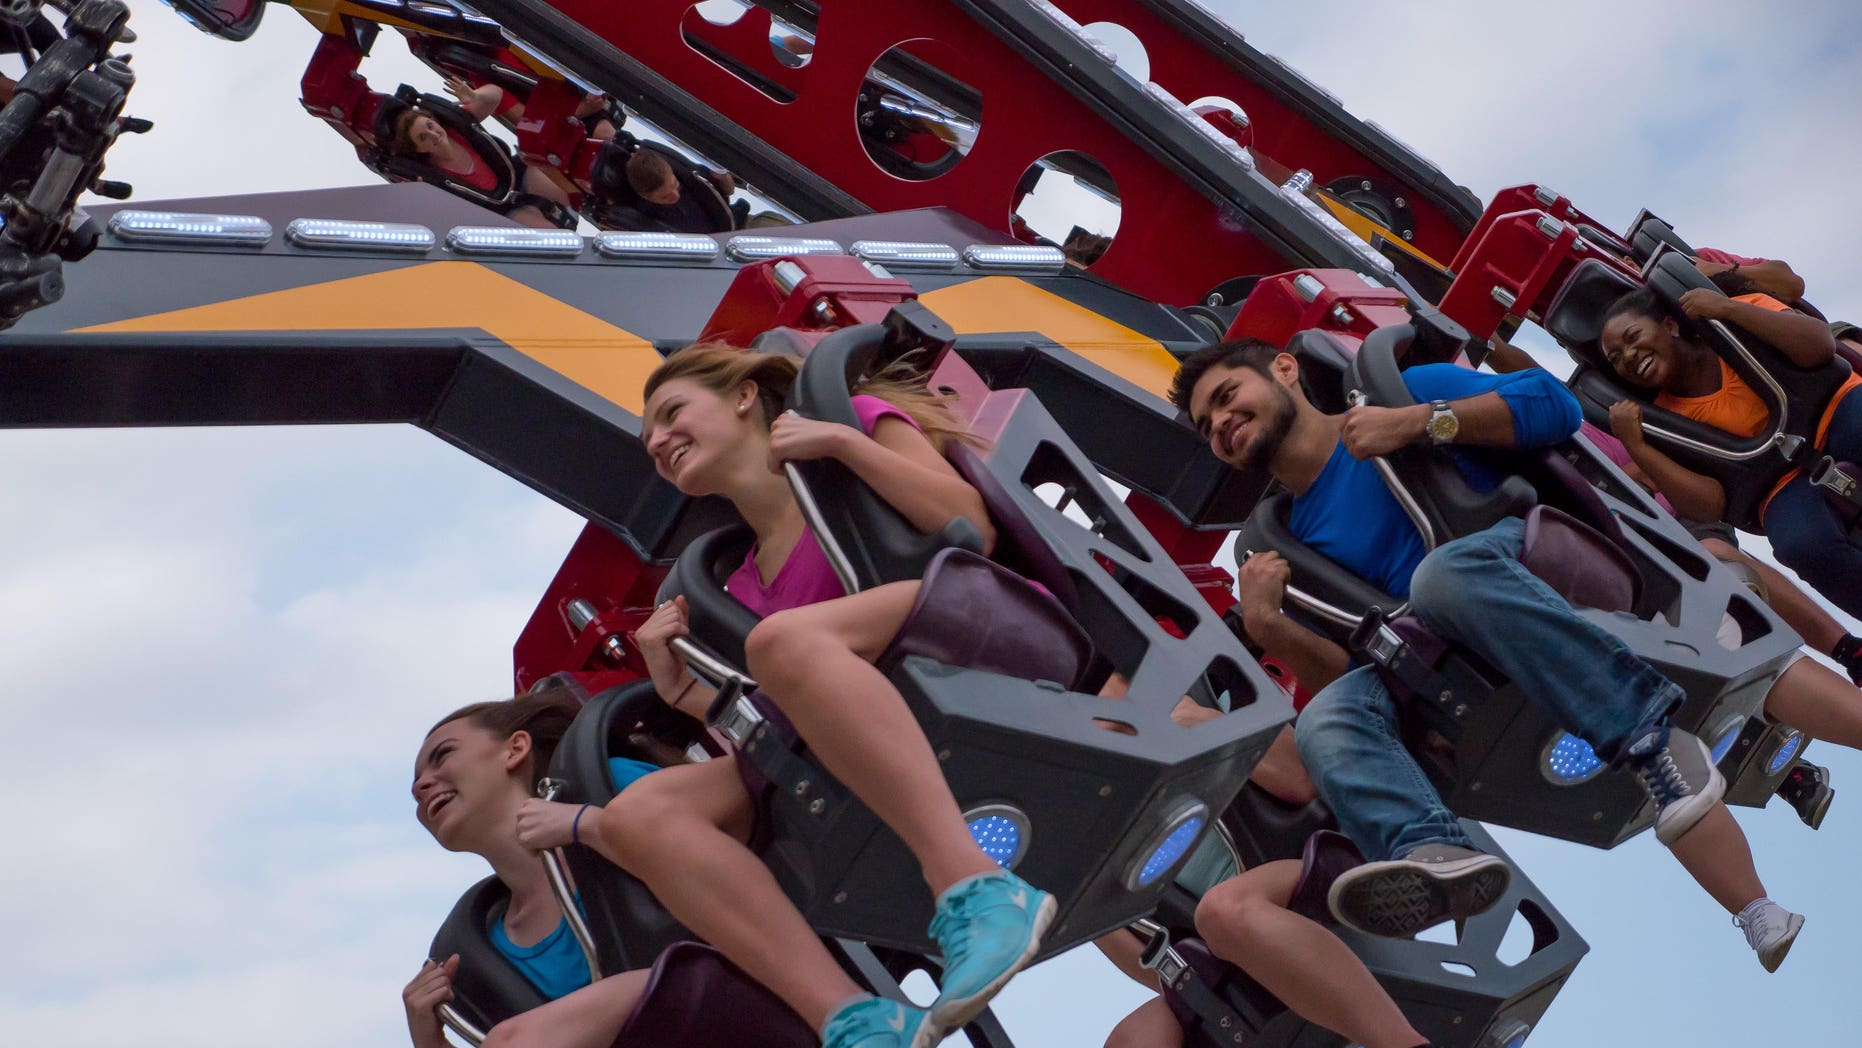 Did Six Flags wrongly turn away a young woman because of her shirt?